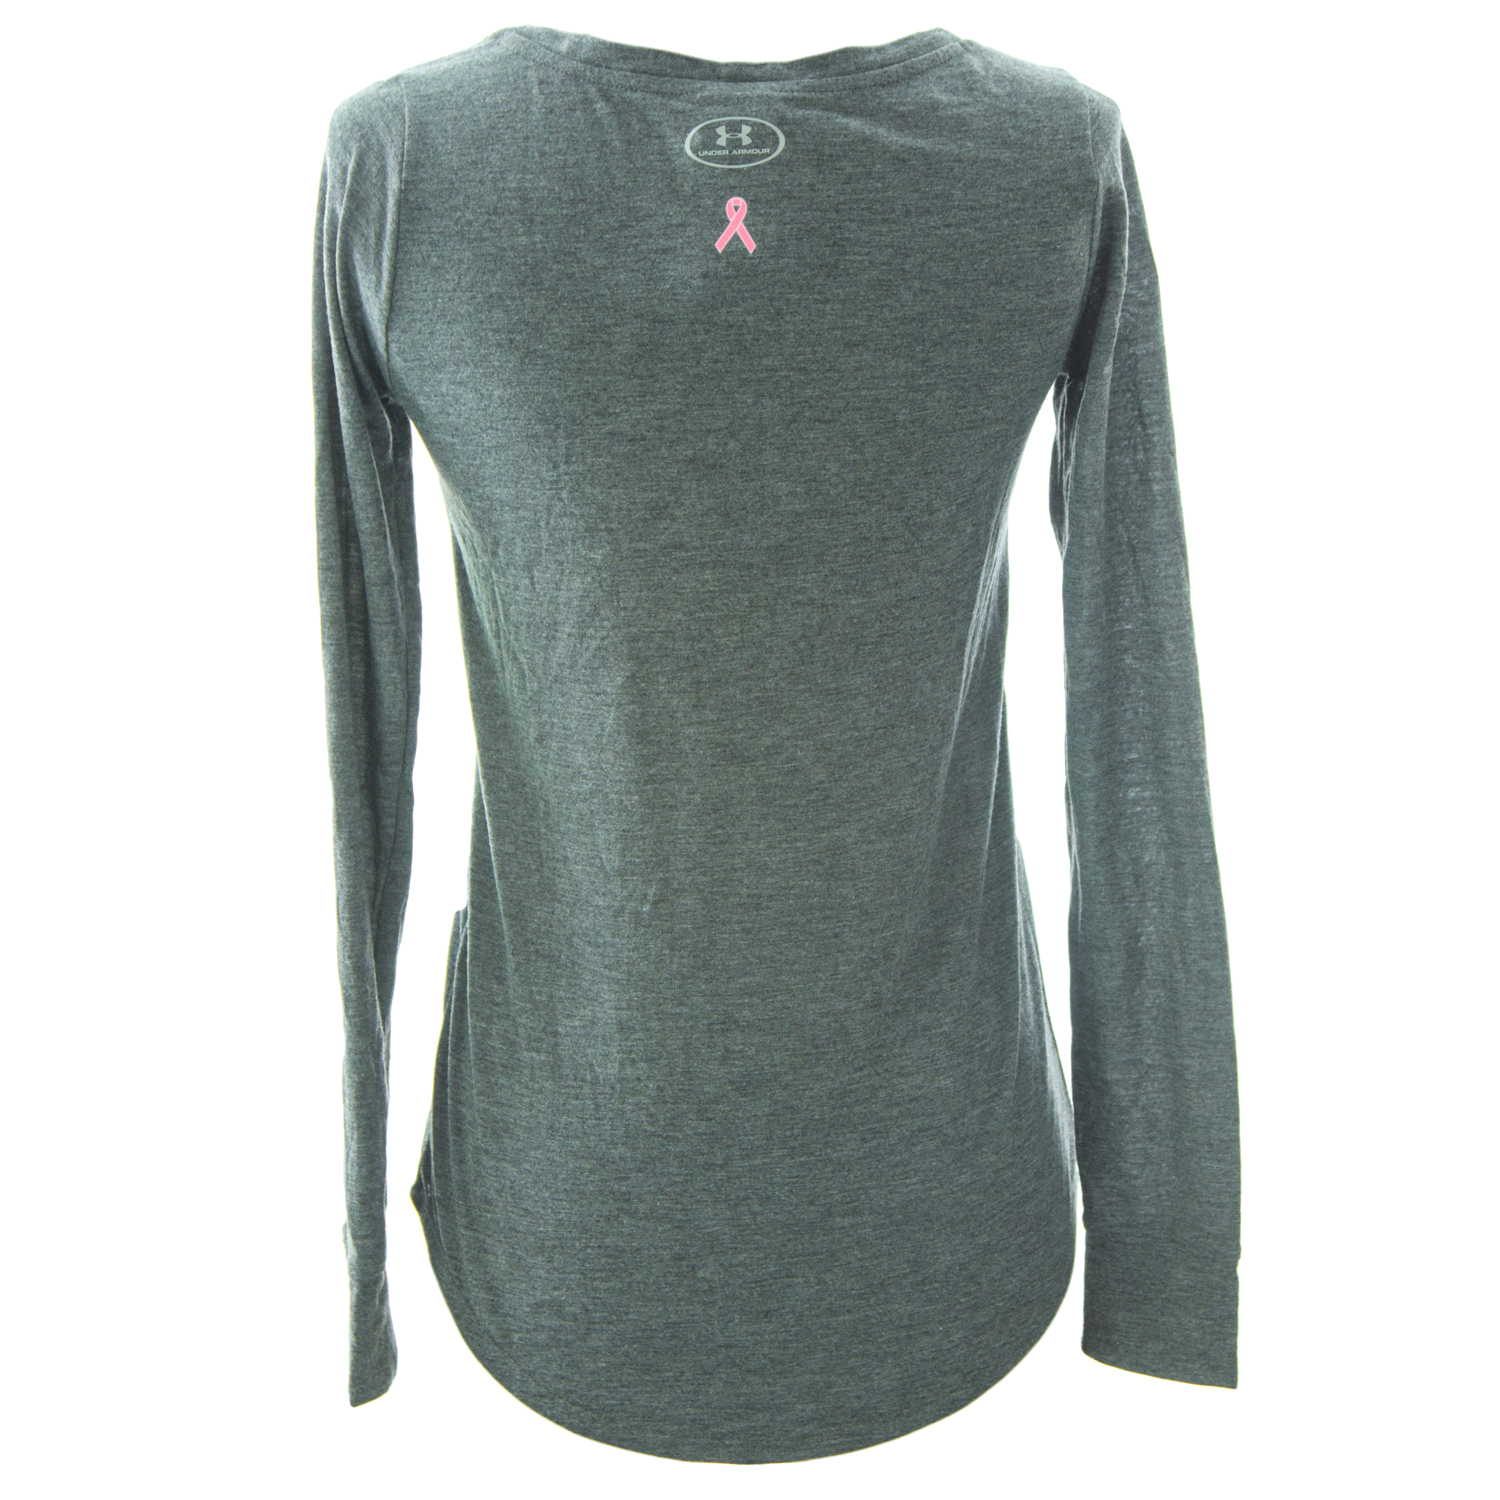 Under armour power in pink women 39 s long sleeve ribbon t for Under armour long sleeve t shirts women